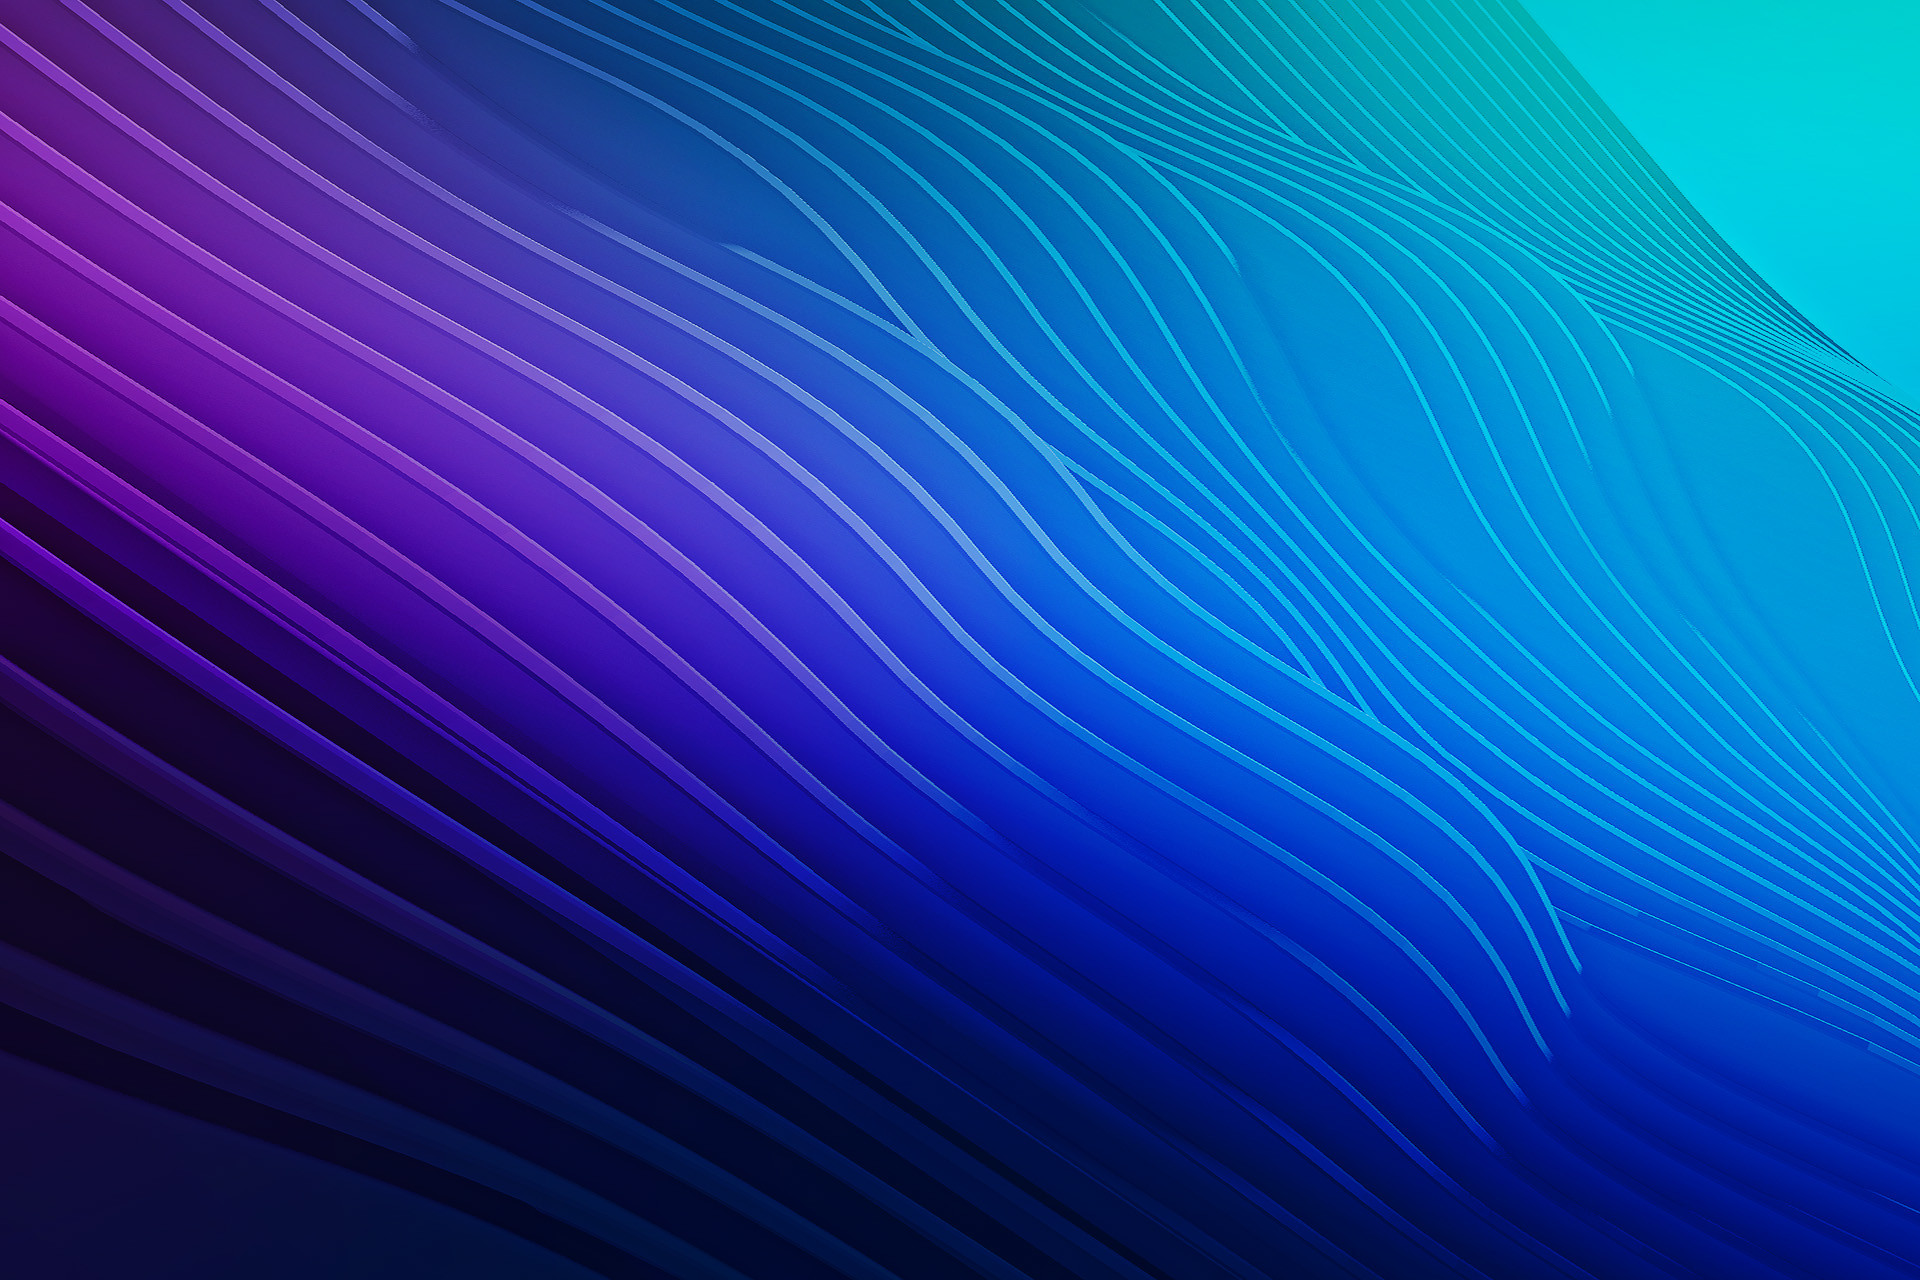 Exciting HD Wallpapers for new Nexus 7 [2013]